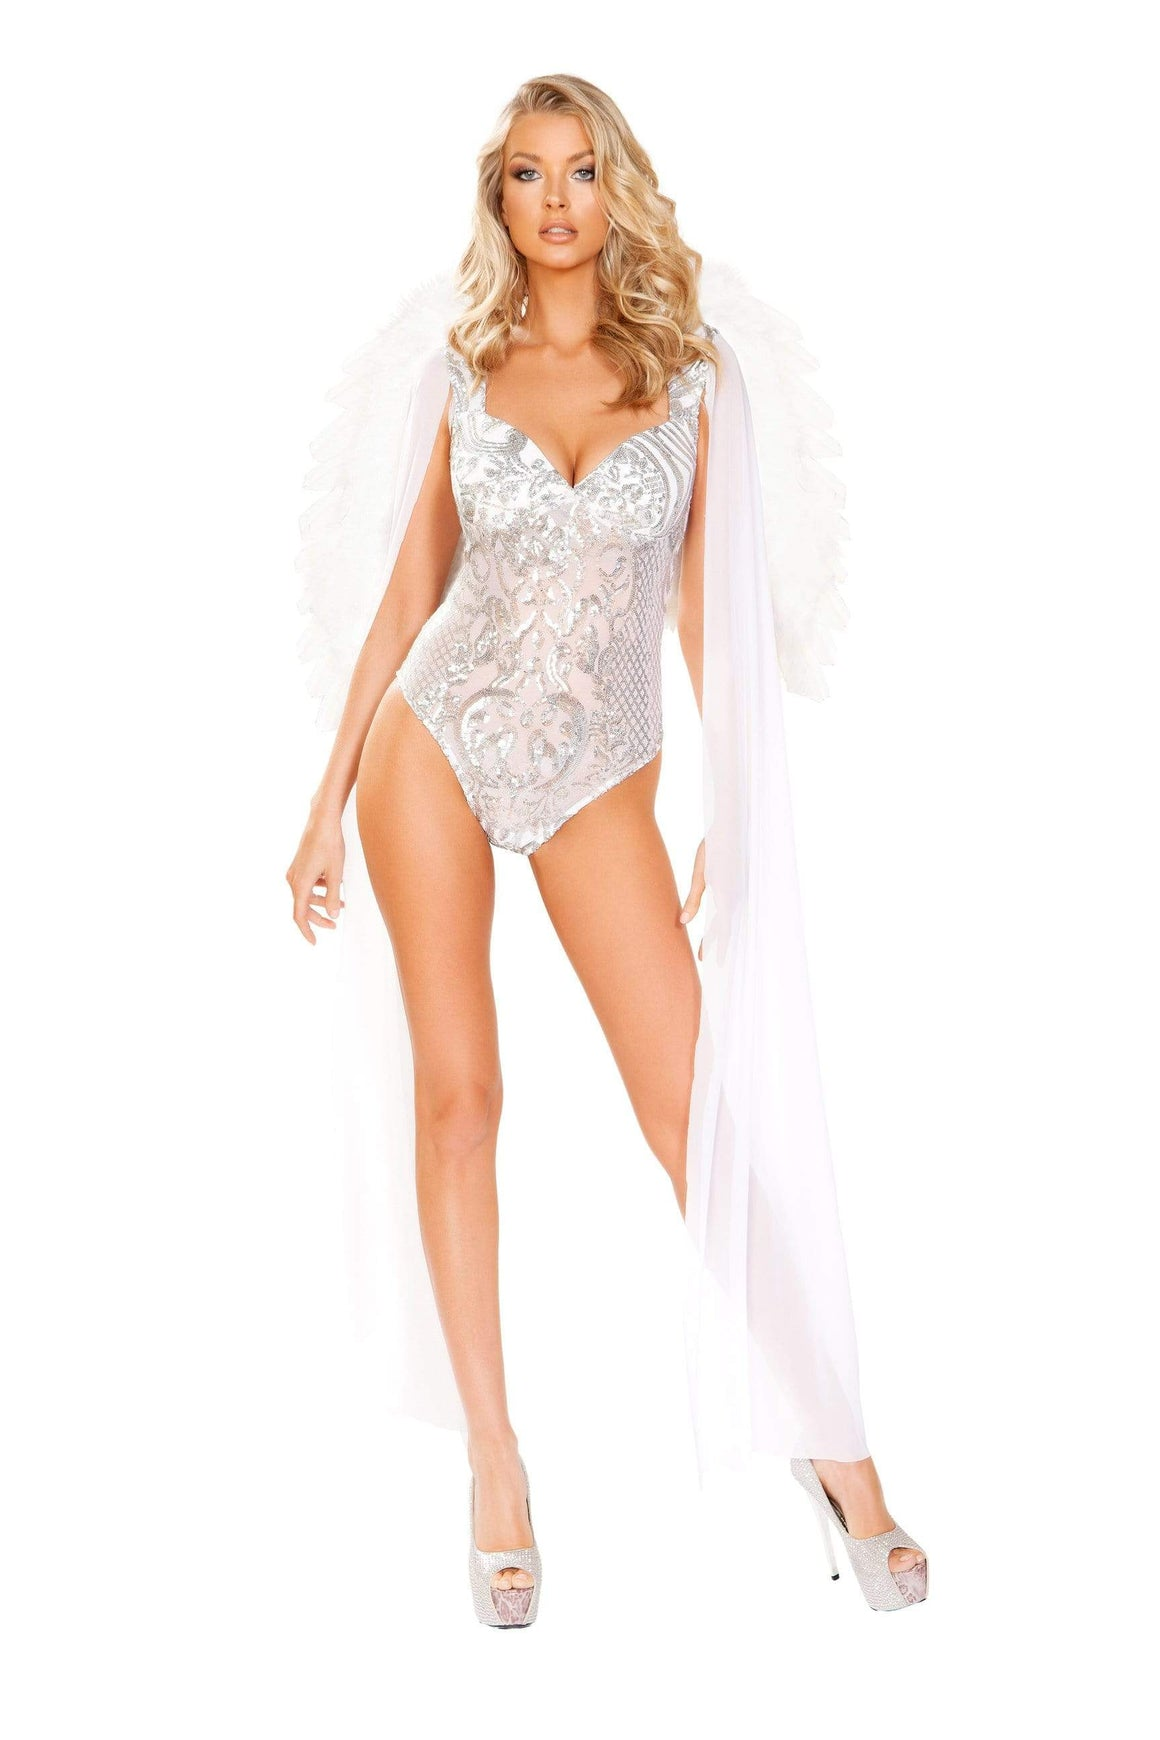 Roma Medium / White One Piece Angel From Heaven SHC-4913-M-R Apparel & Accessories > Costumes & Accessories > Costumes